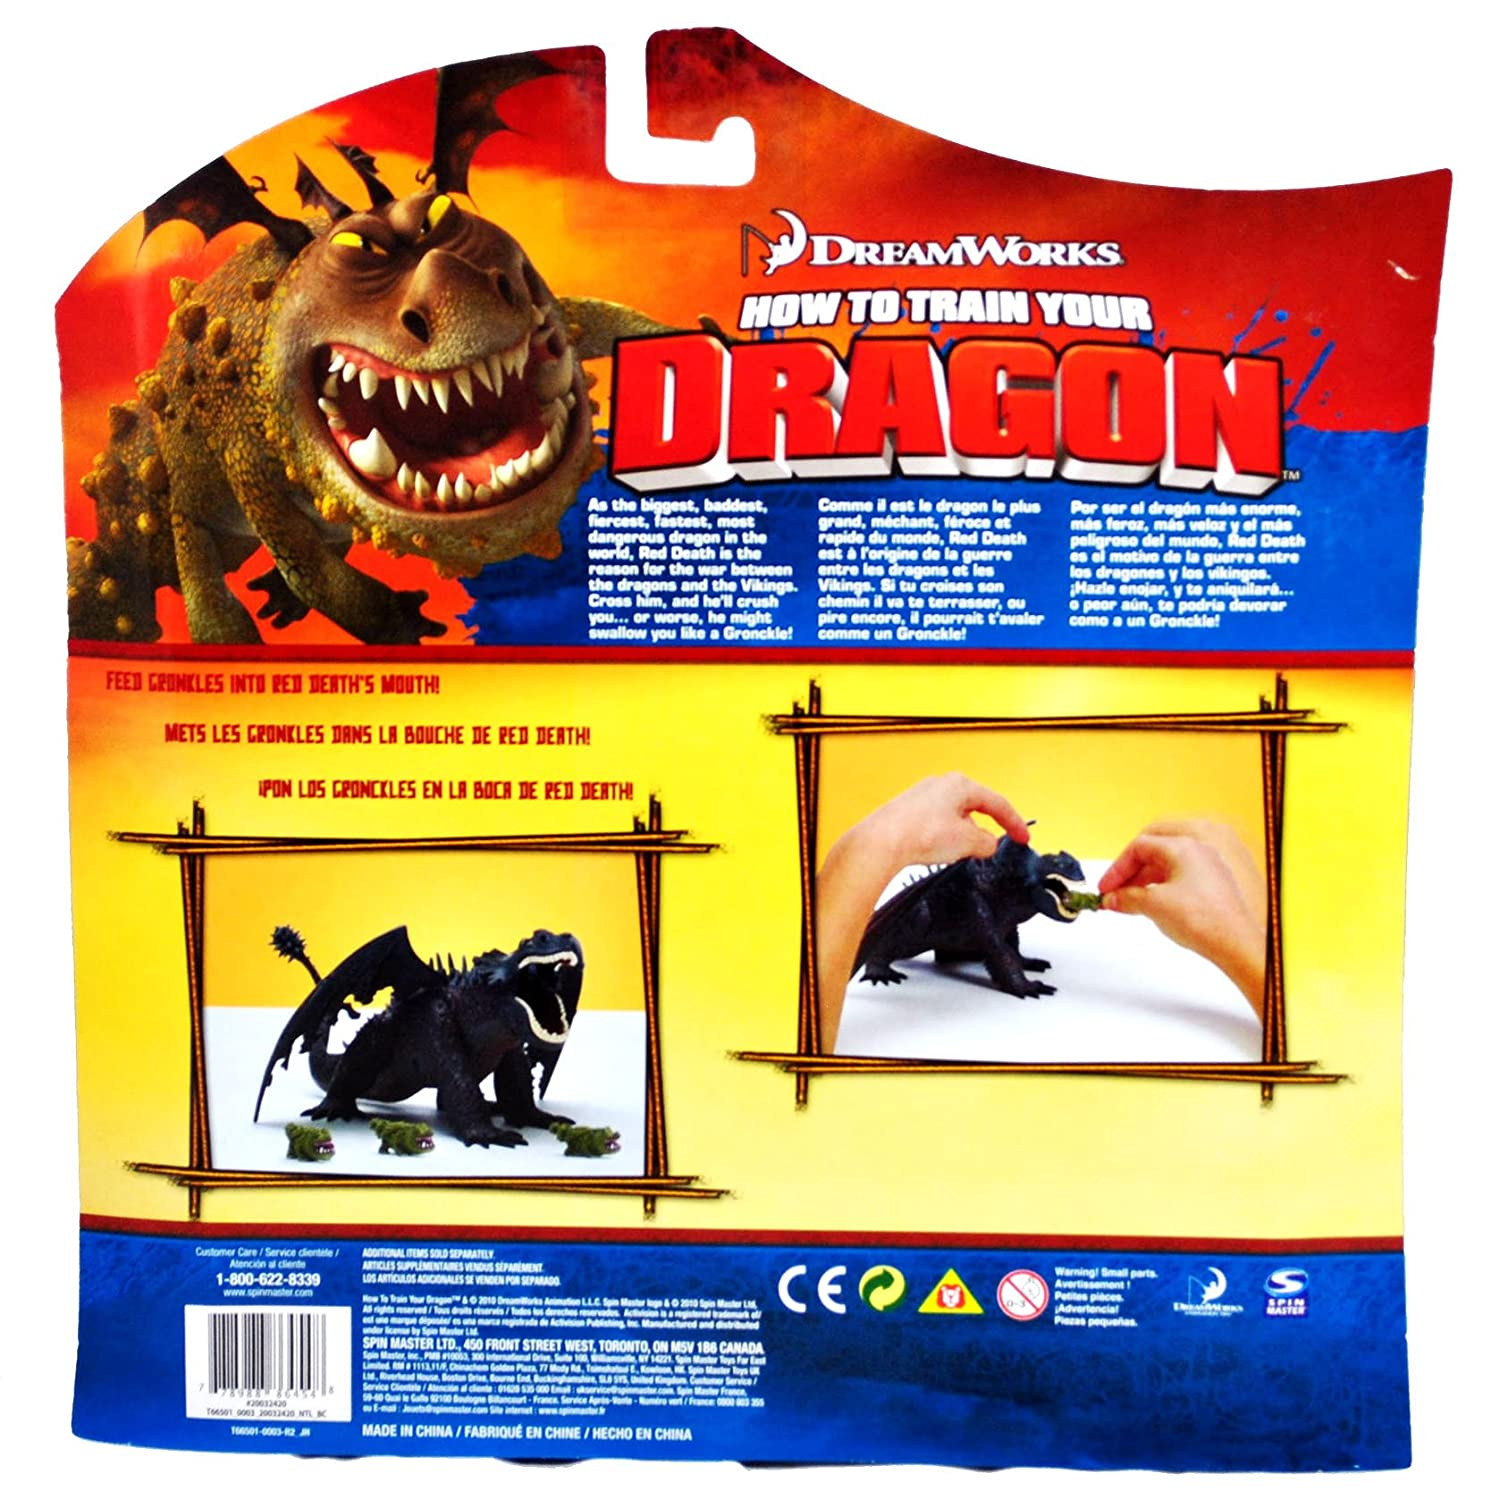 Amazon dreamworks movie series how to train your dragon amazon dreamworks movie series how to train your dragon exclusive 8 inch long action figure red death with 3 mini gronckles toys games ccuart Choice Image